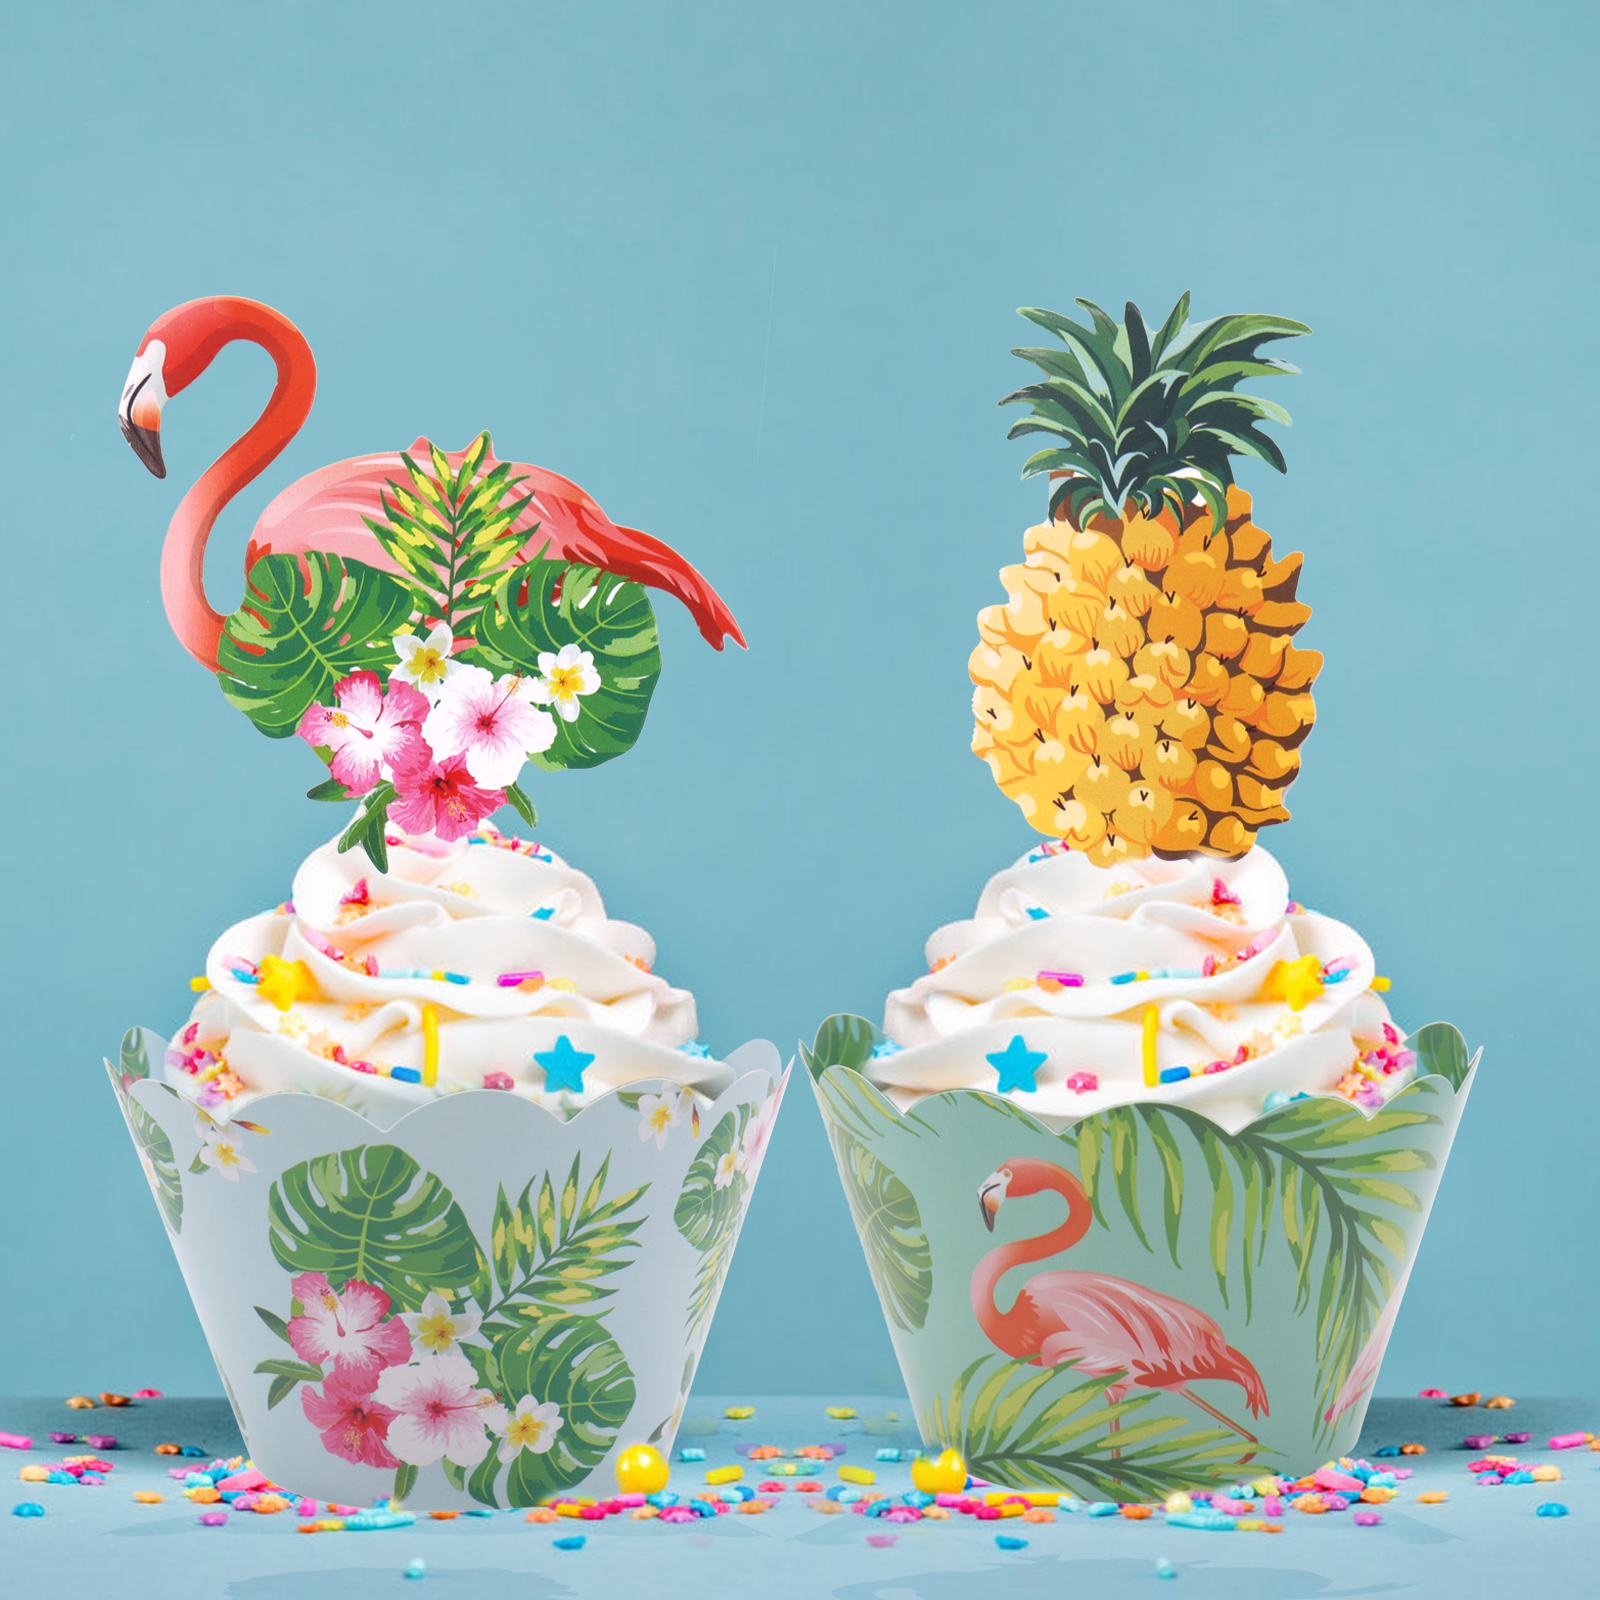 24pcs/st Tropic Flamingo / Pineapple Cupcake Wrappers + Cake Topper for Hawaii Wedding Birthday Party Cake Decorating Supplies toy story bunny toys